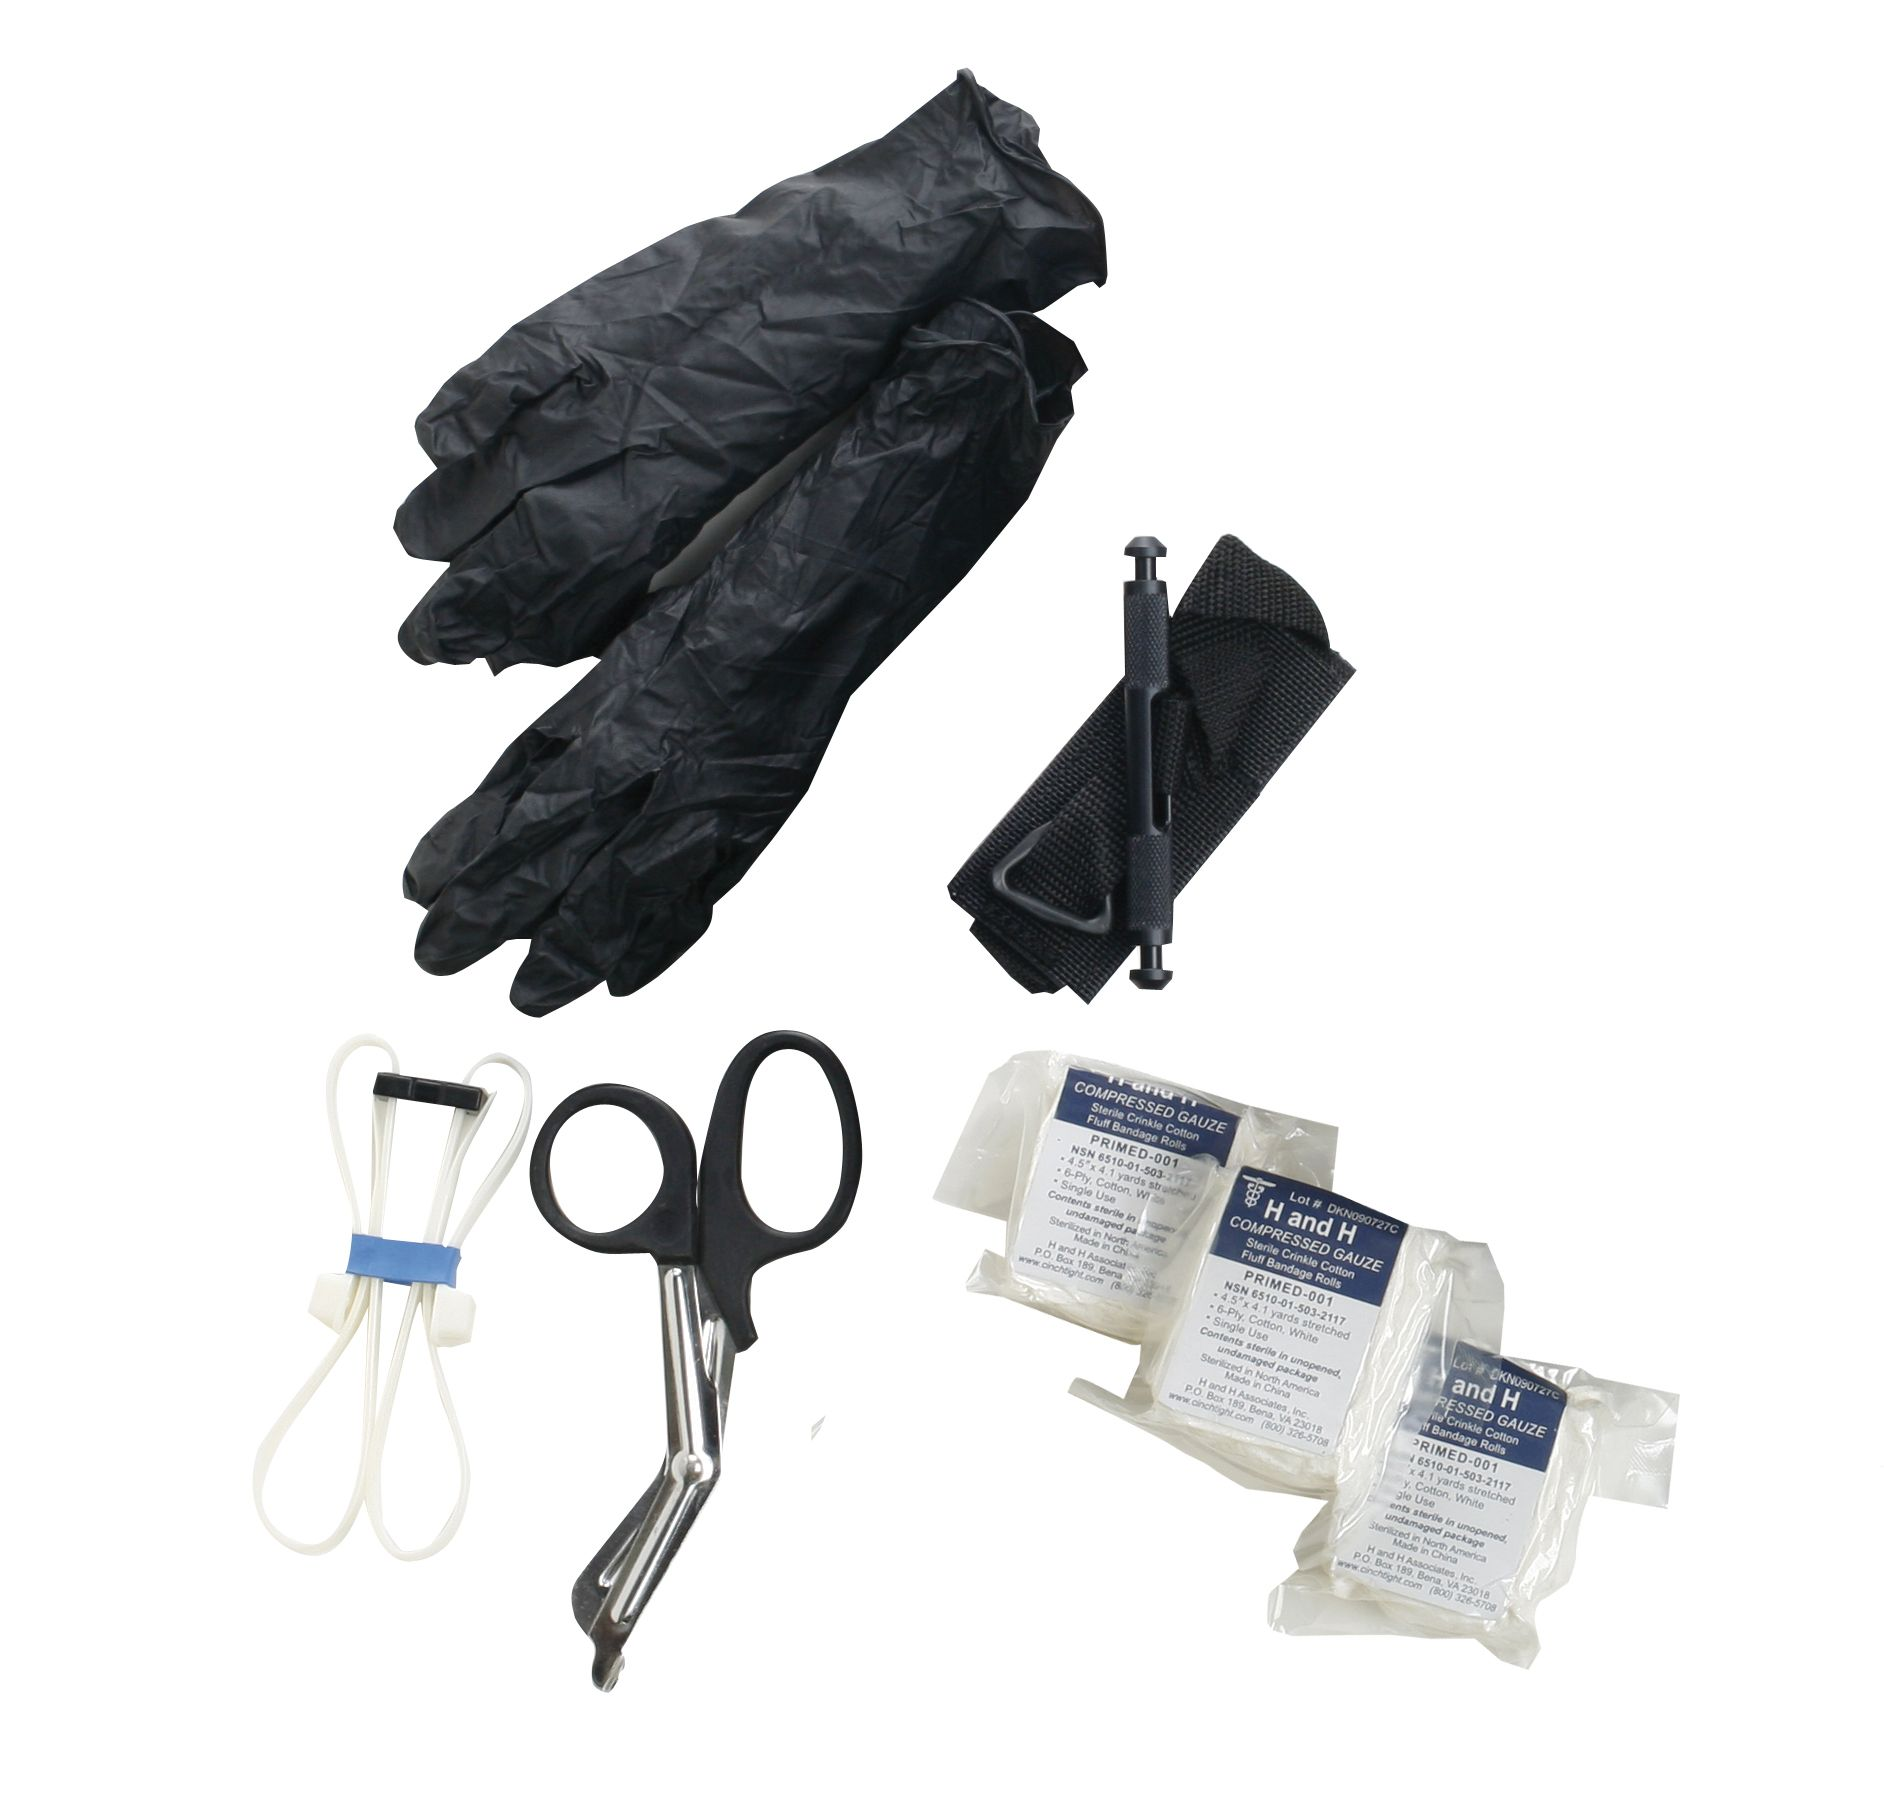 Medical Supply Kit for RDP Medical supplies, Law